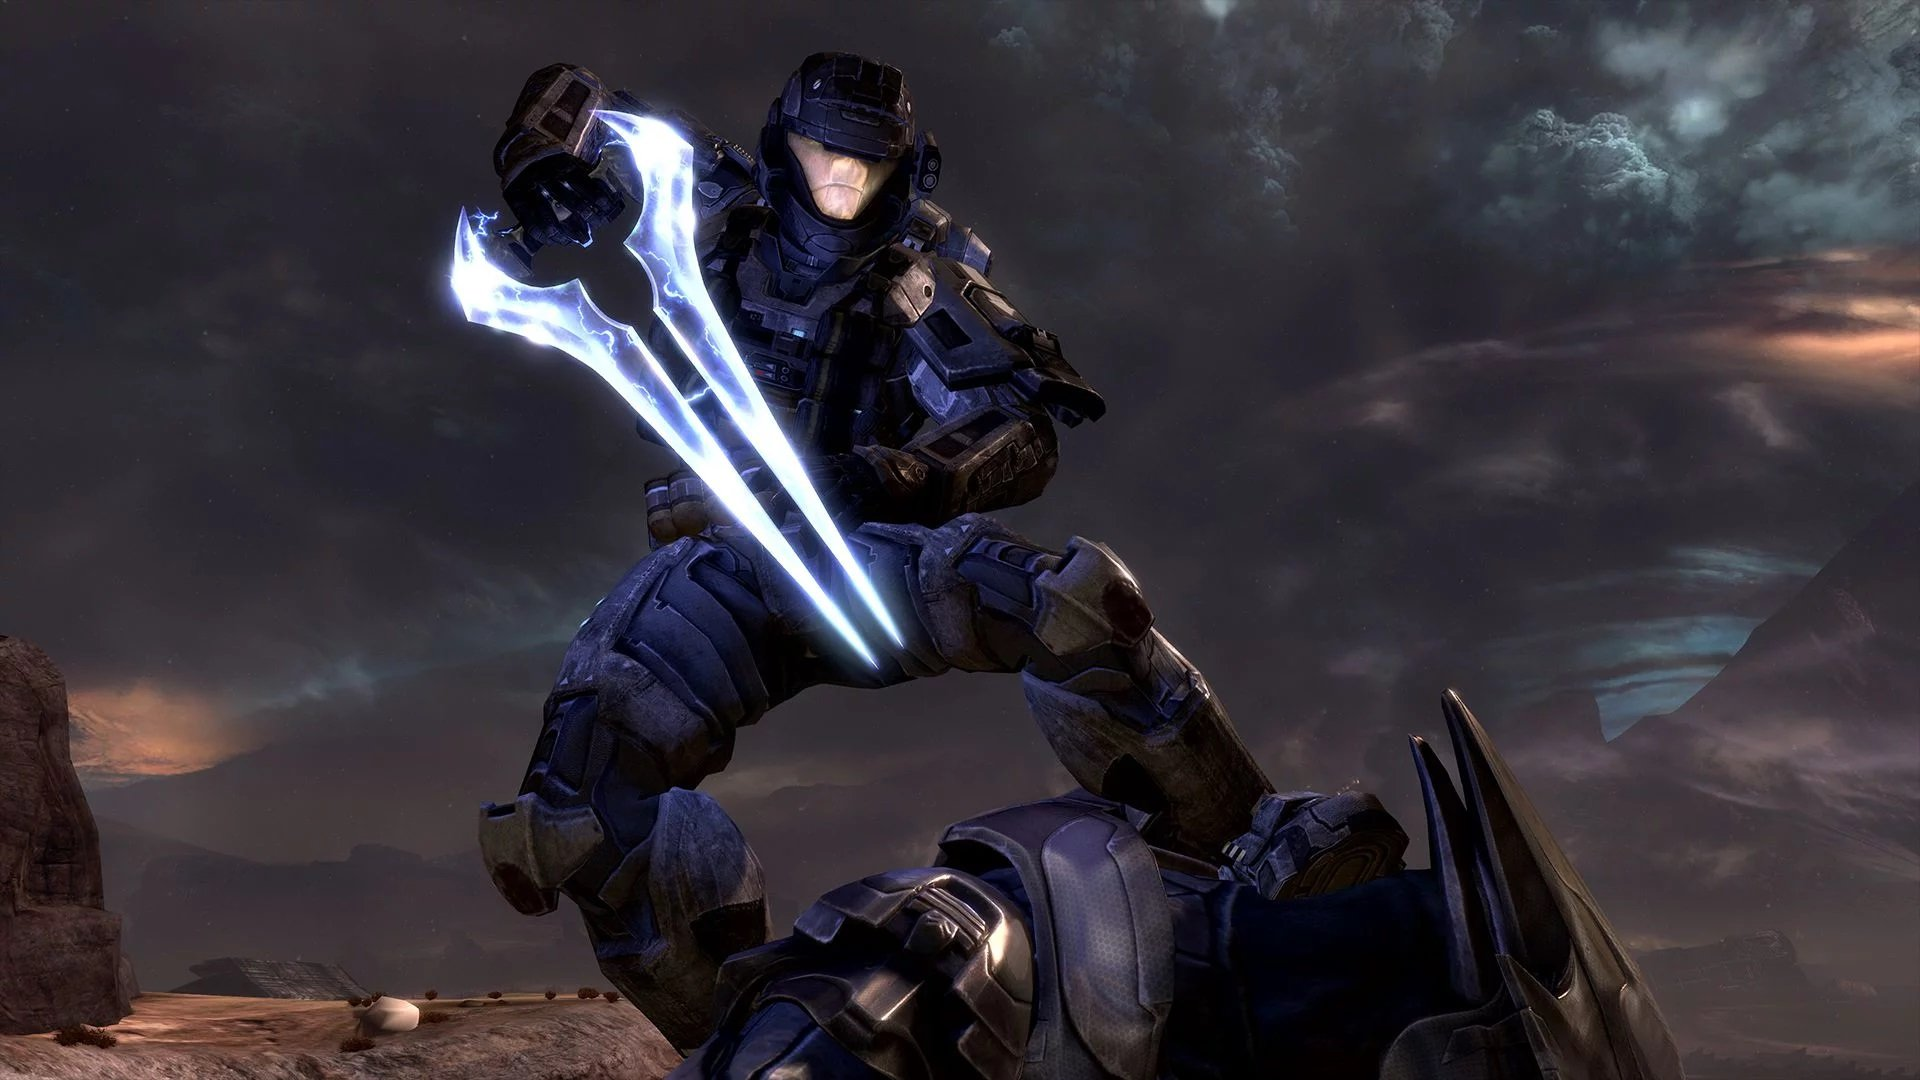 Halo: Reach out now on PC and Xbox One